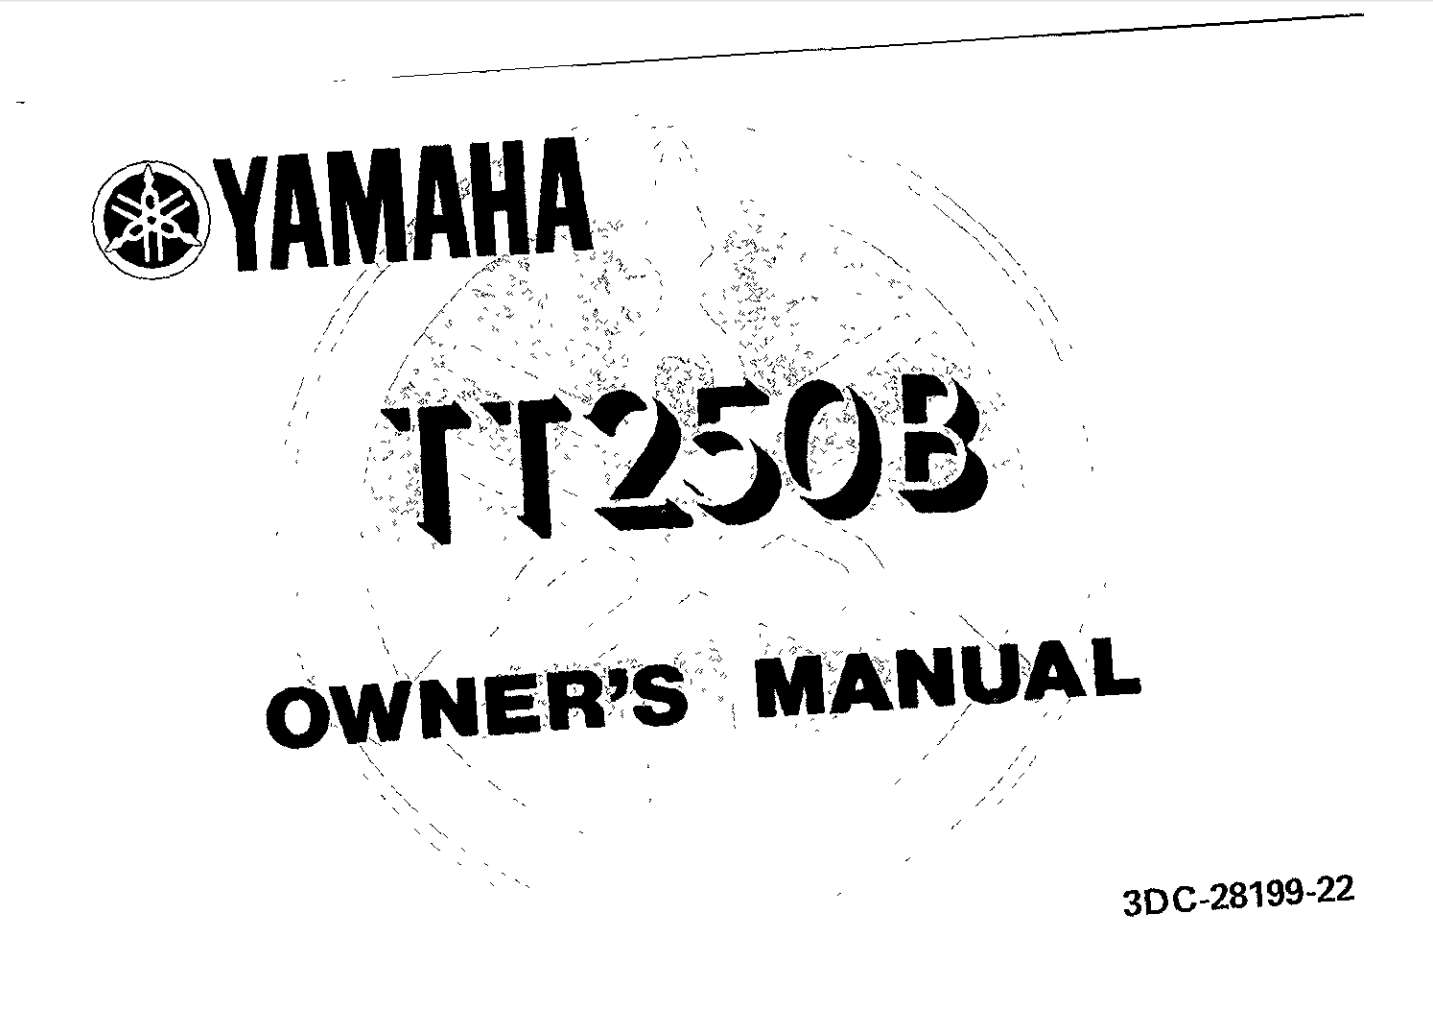 Yamaha TT250 B 1991 Owner's Manual